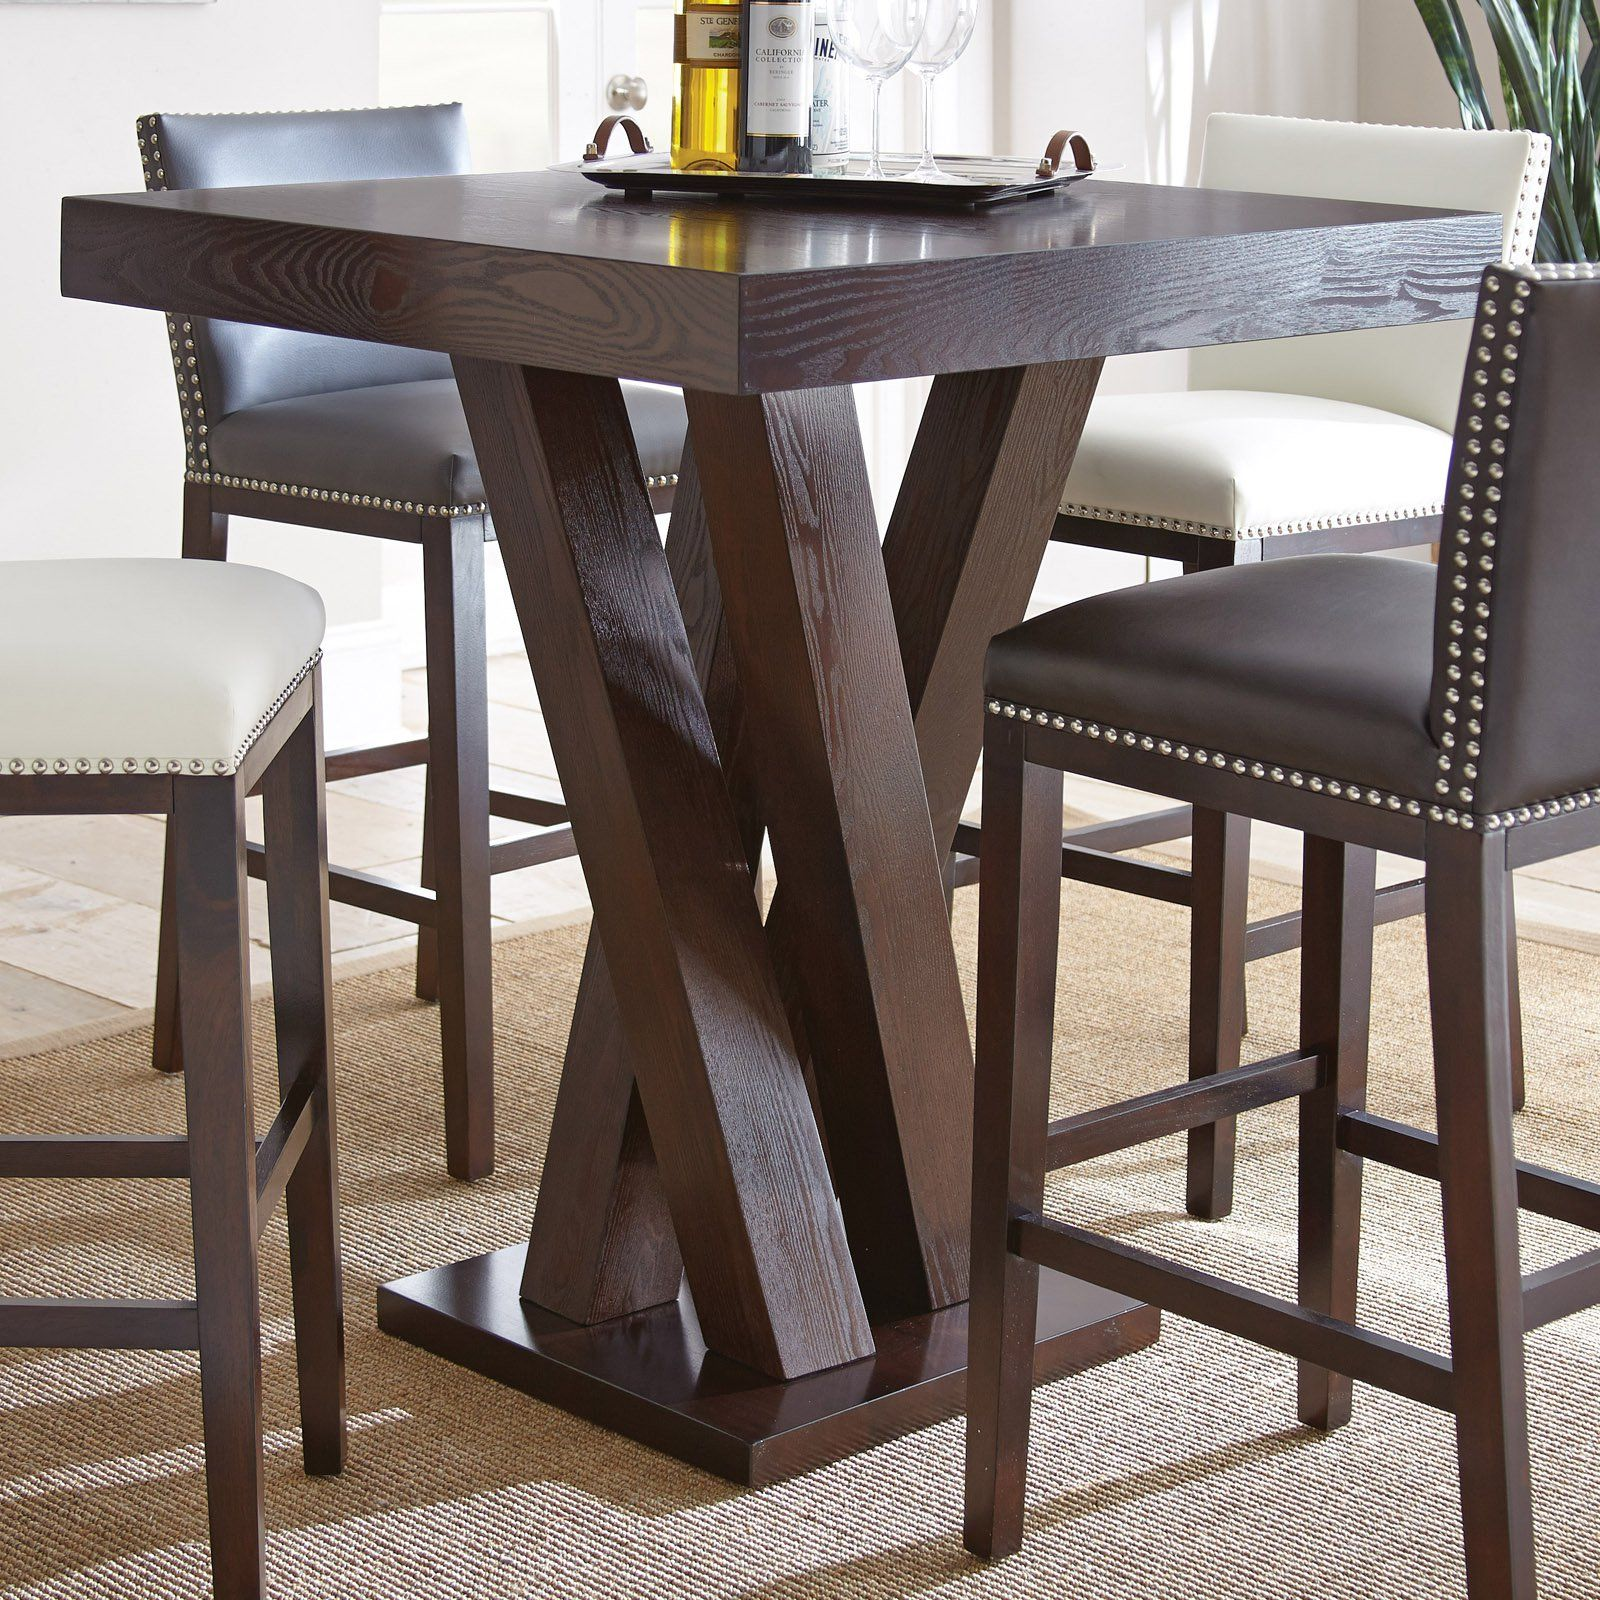 Tall Kitchen Table And Chairs Posture Task Chair Steve Silver Tiffany Square Bar Height From